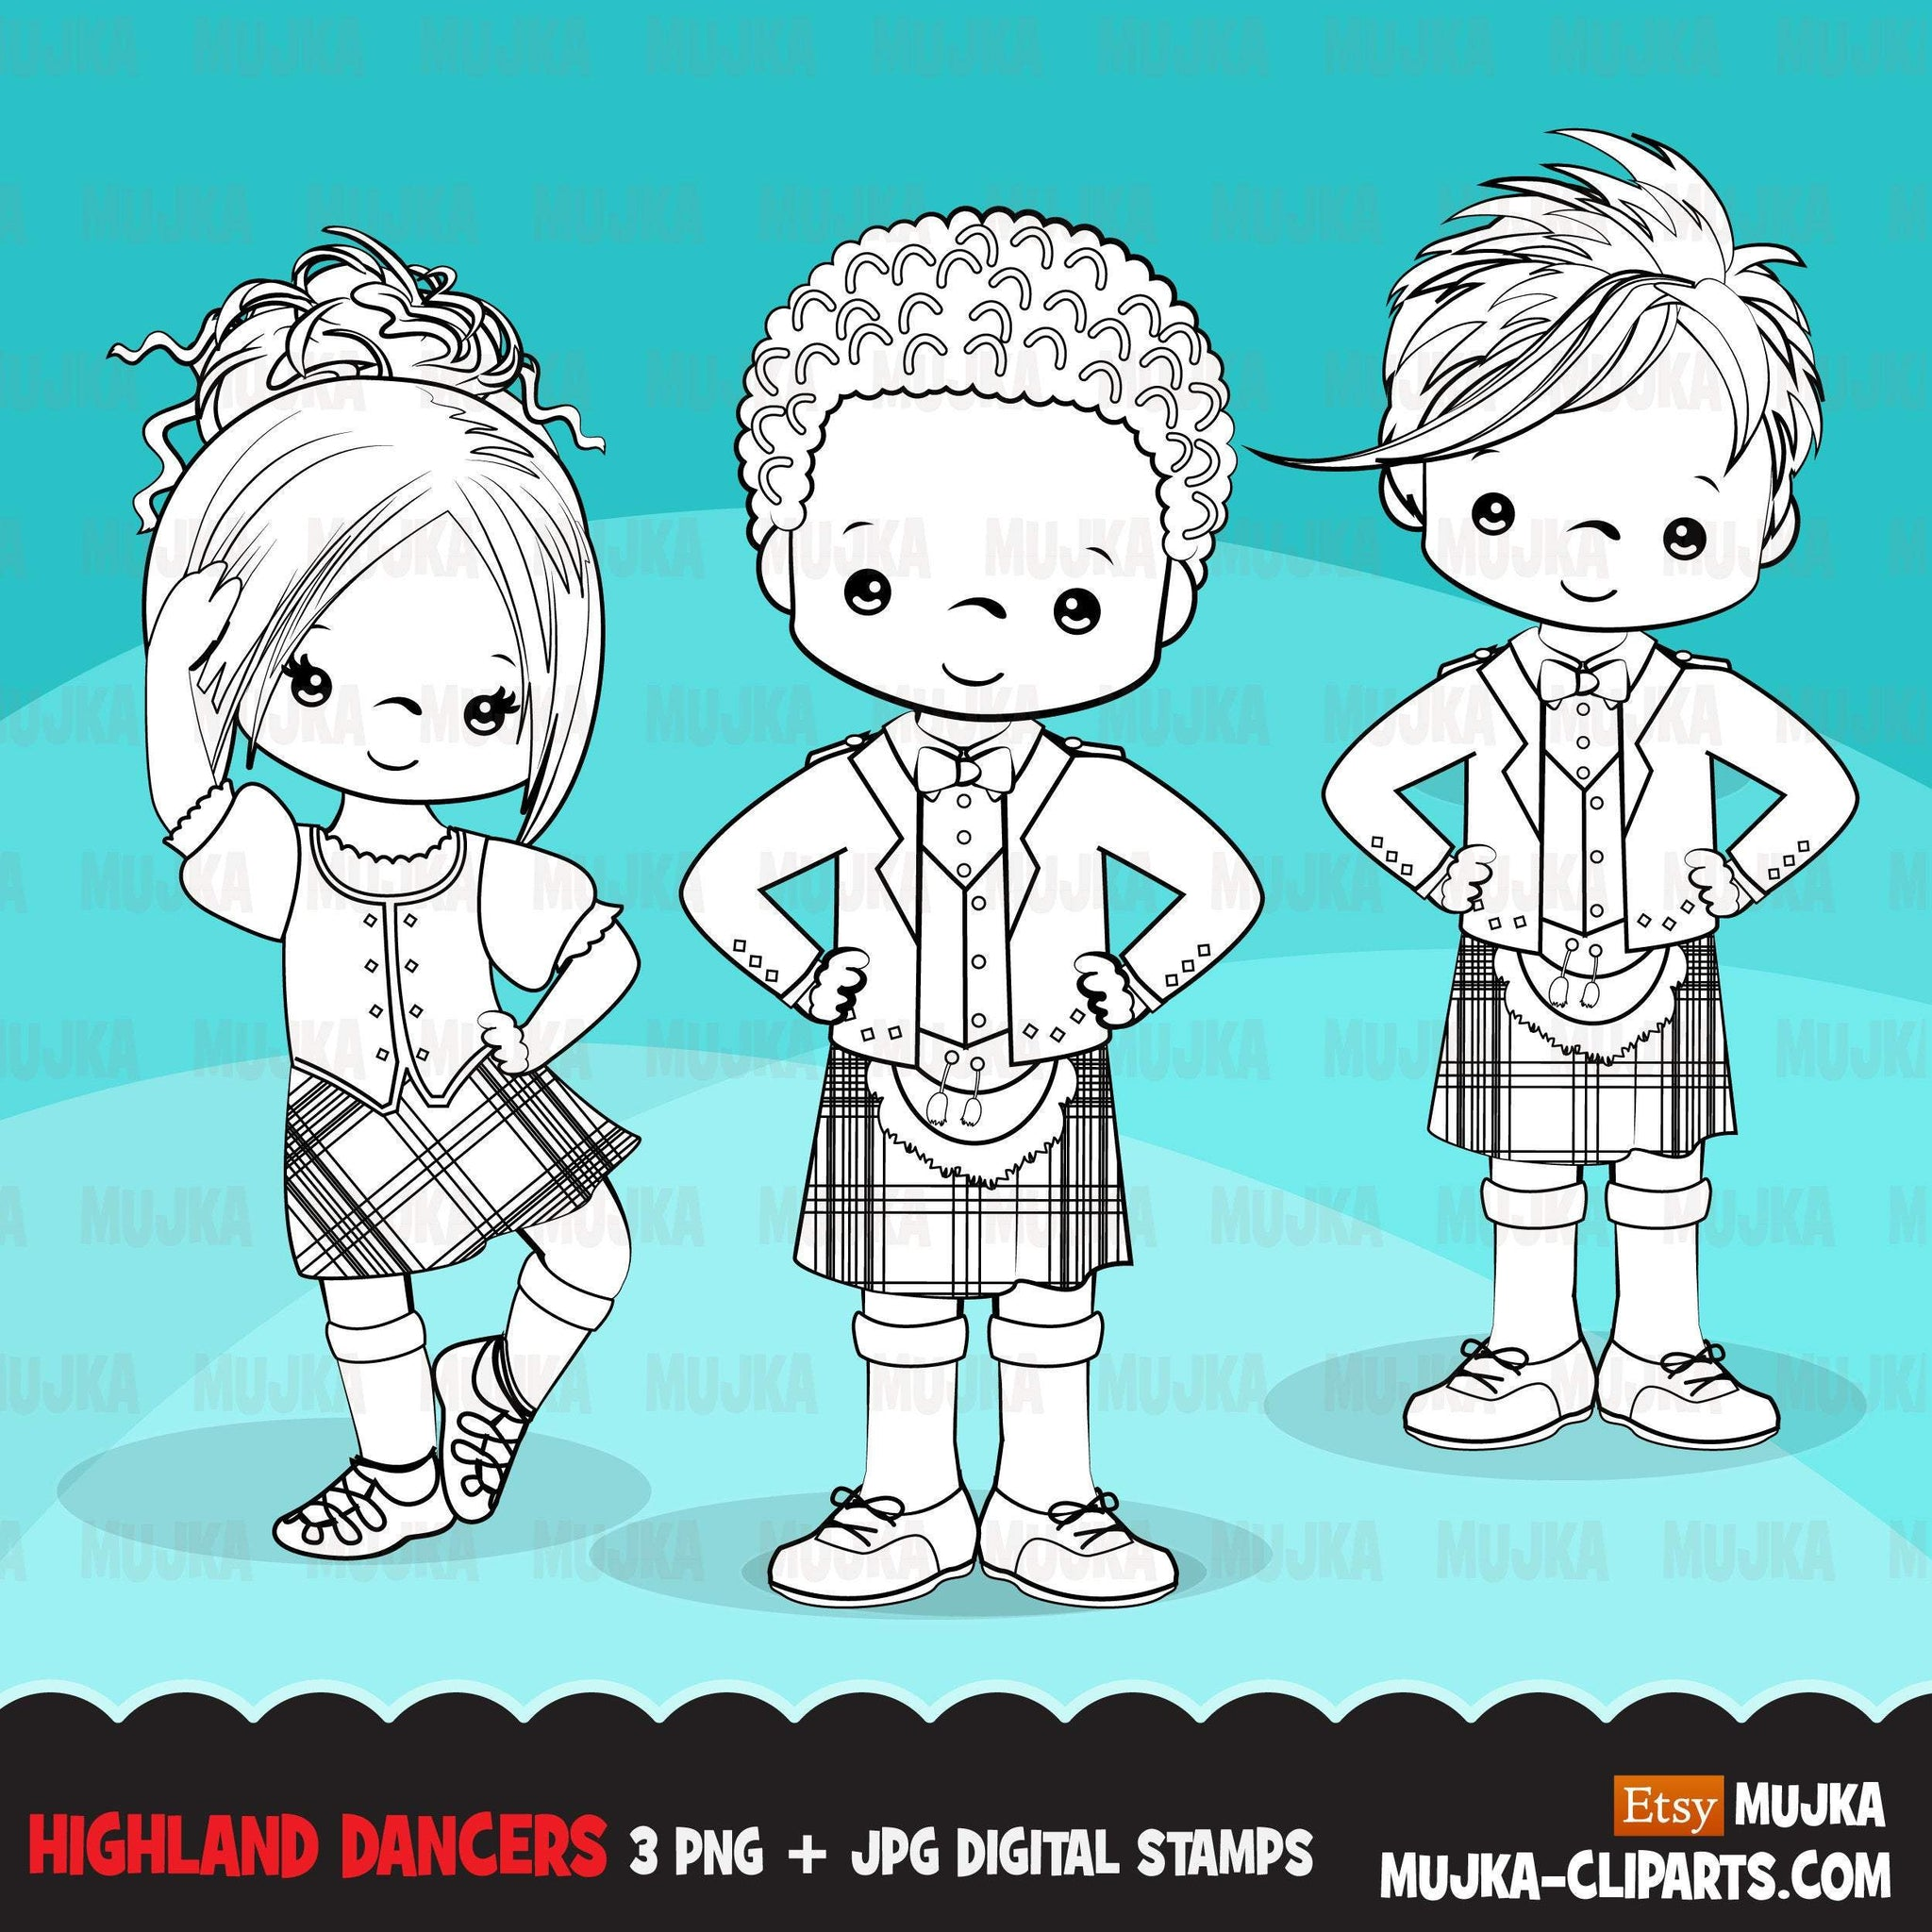 Highland dancers digital stamps, Cute Scottish dancers with kiltie, school activity, Scottish tradition graphic, B&W clip art outline